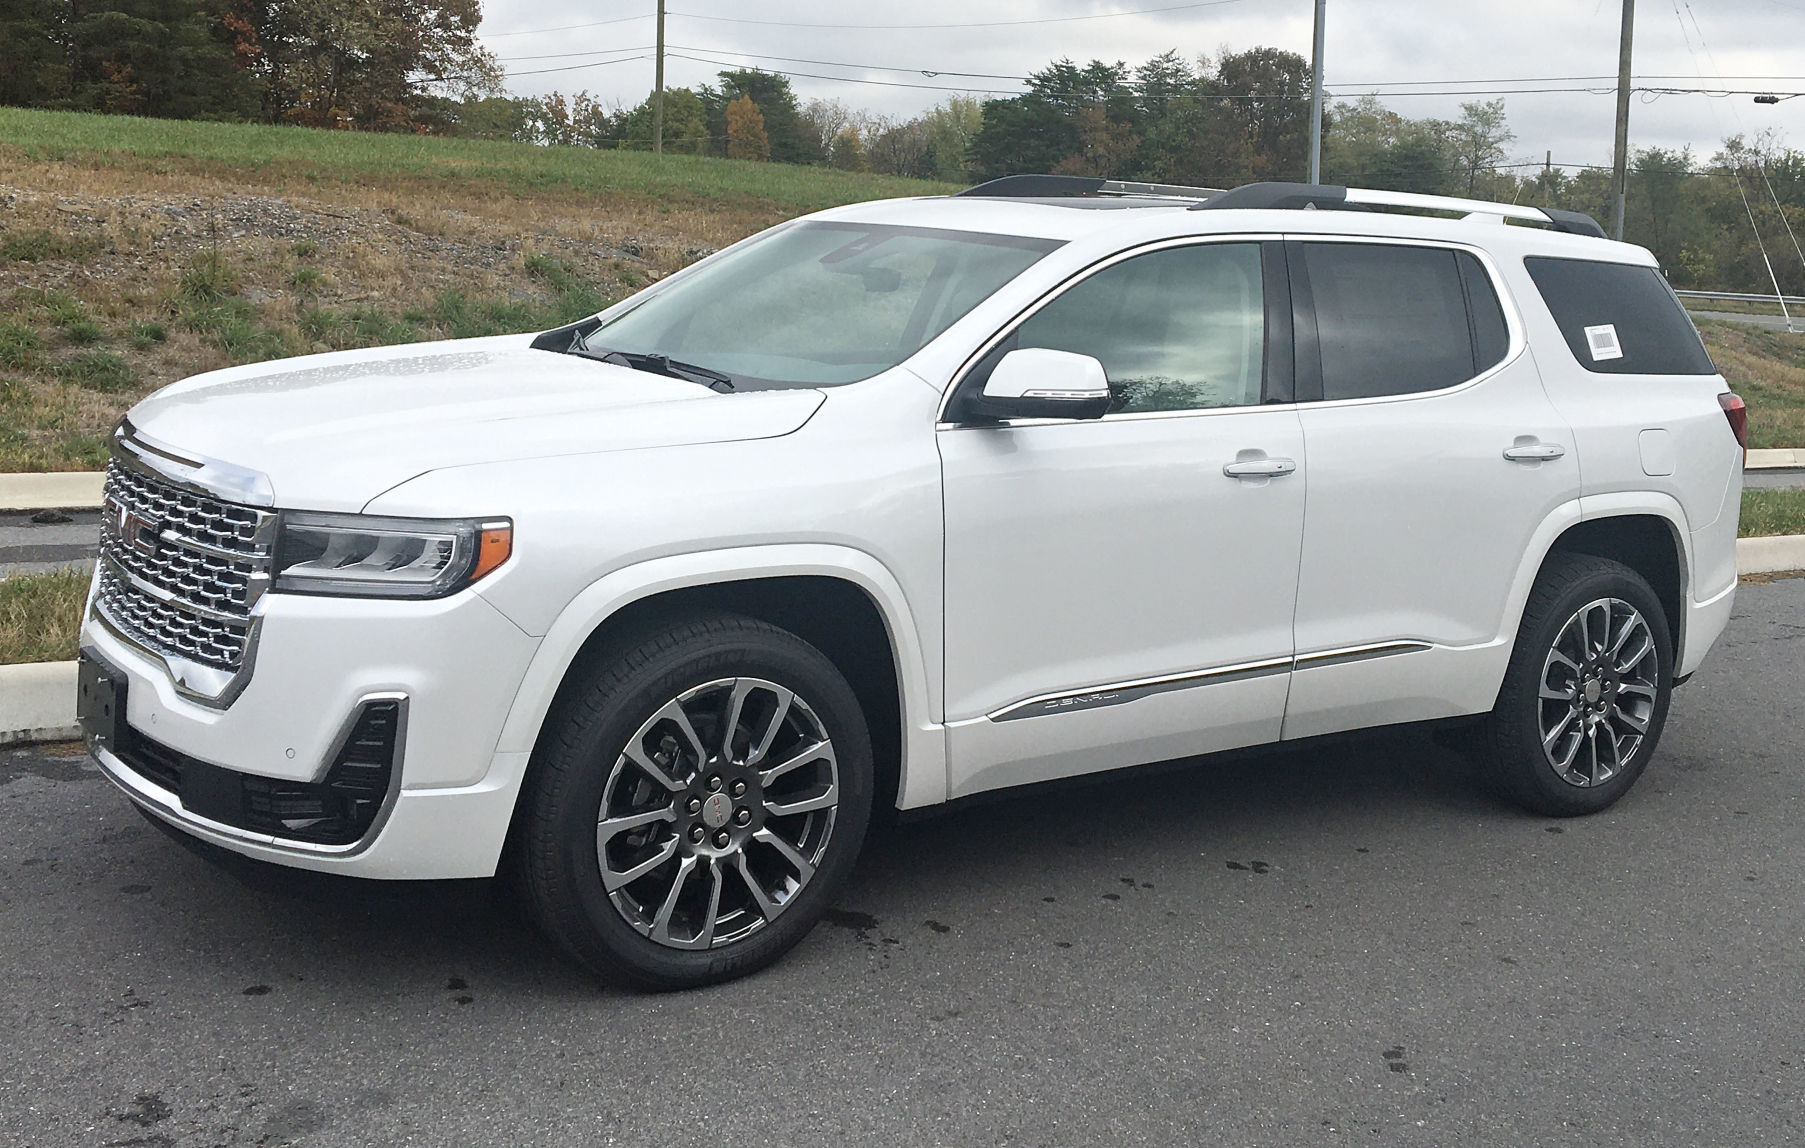 Tom Crosby Gmc Acadia Suv Adds Improvements For 2020 Nvdaily Nvdaily Com